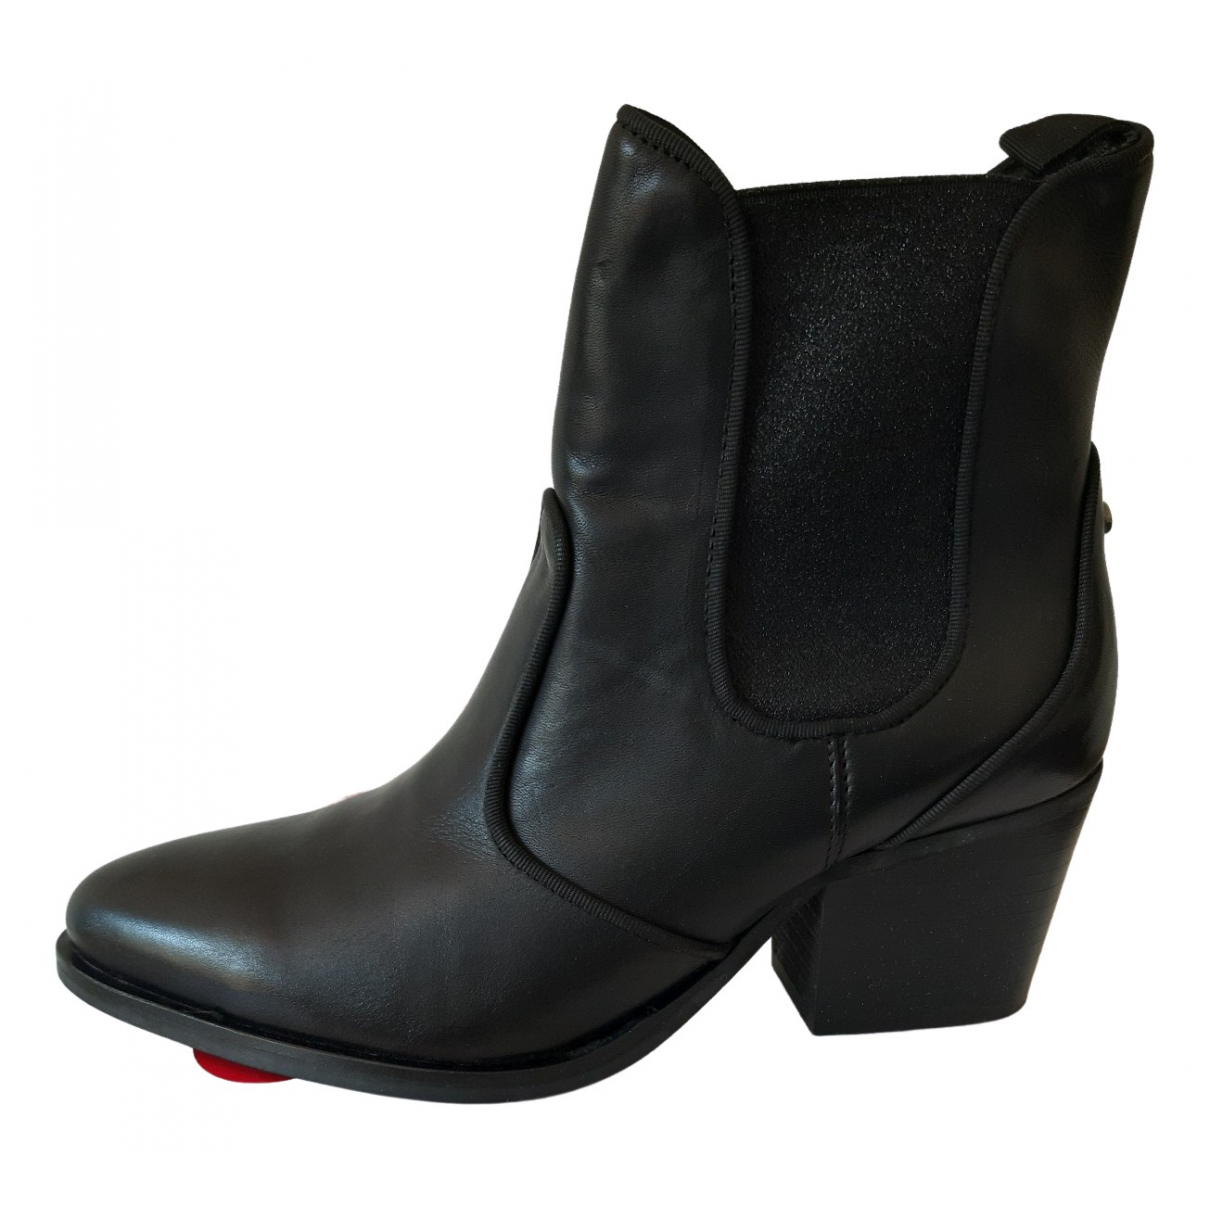 Guess \N Black Leather Boots for Women 38 EU